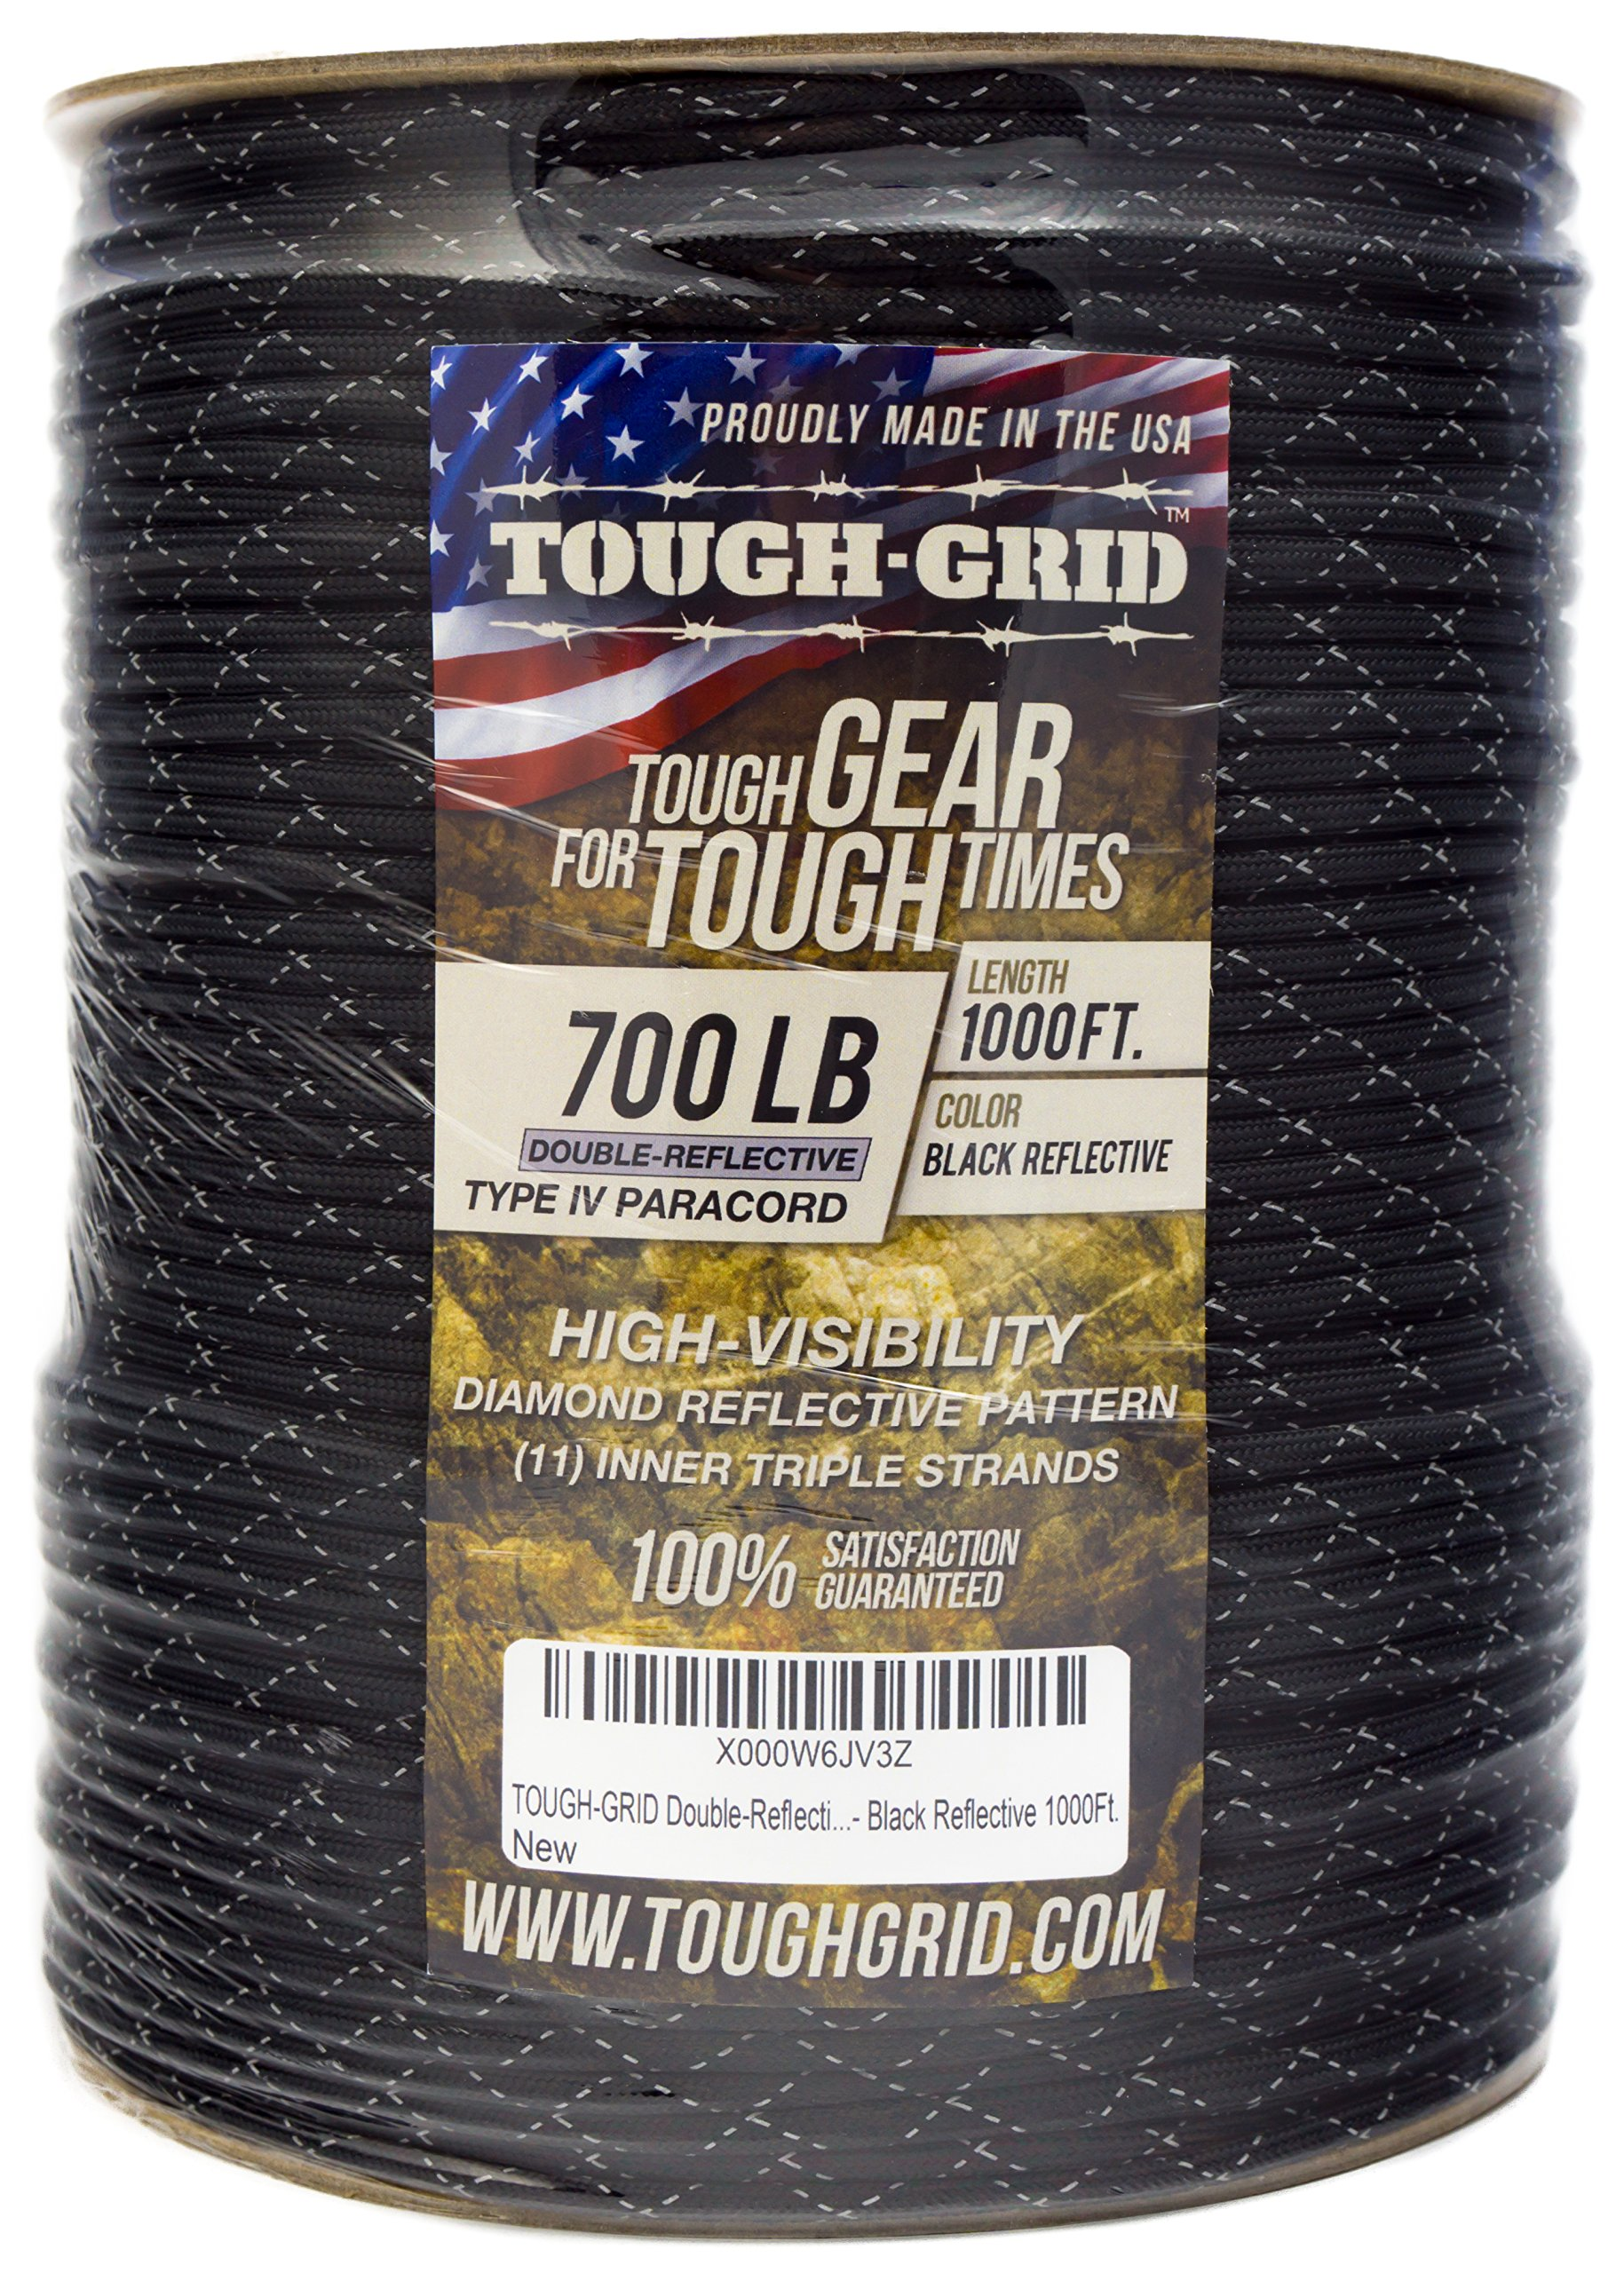 TOUGH-GRID New 700lb Double-Reflective Paracord/Parachute Cord - 2 Vibrant Retro-Reflective Strands for The Ultimate High-Visibility Cord - 100% Nylon - Made in USA. - 500Ft. Black Reflective by TOUGH-GRID (Image #7)